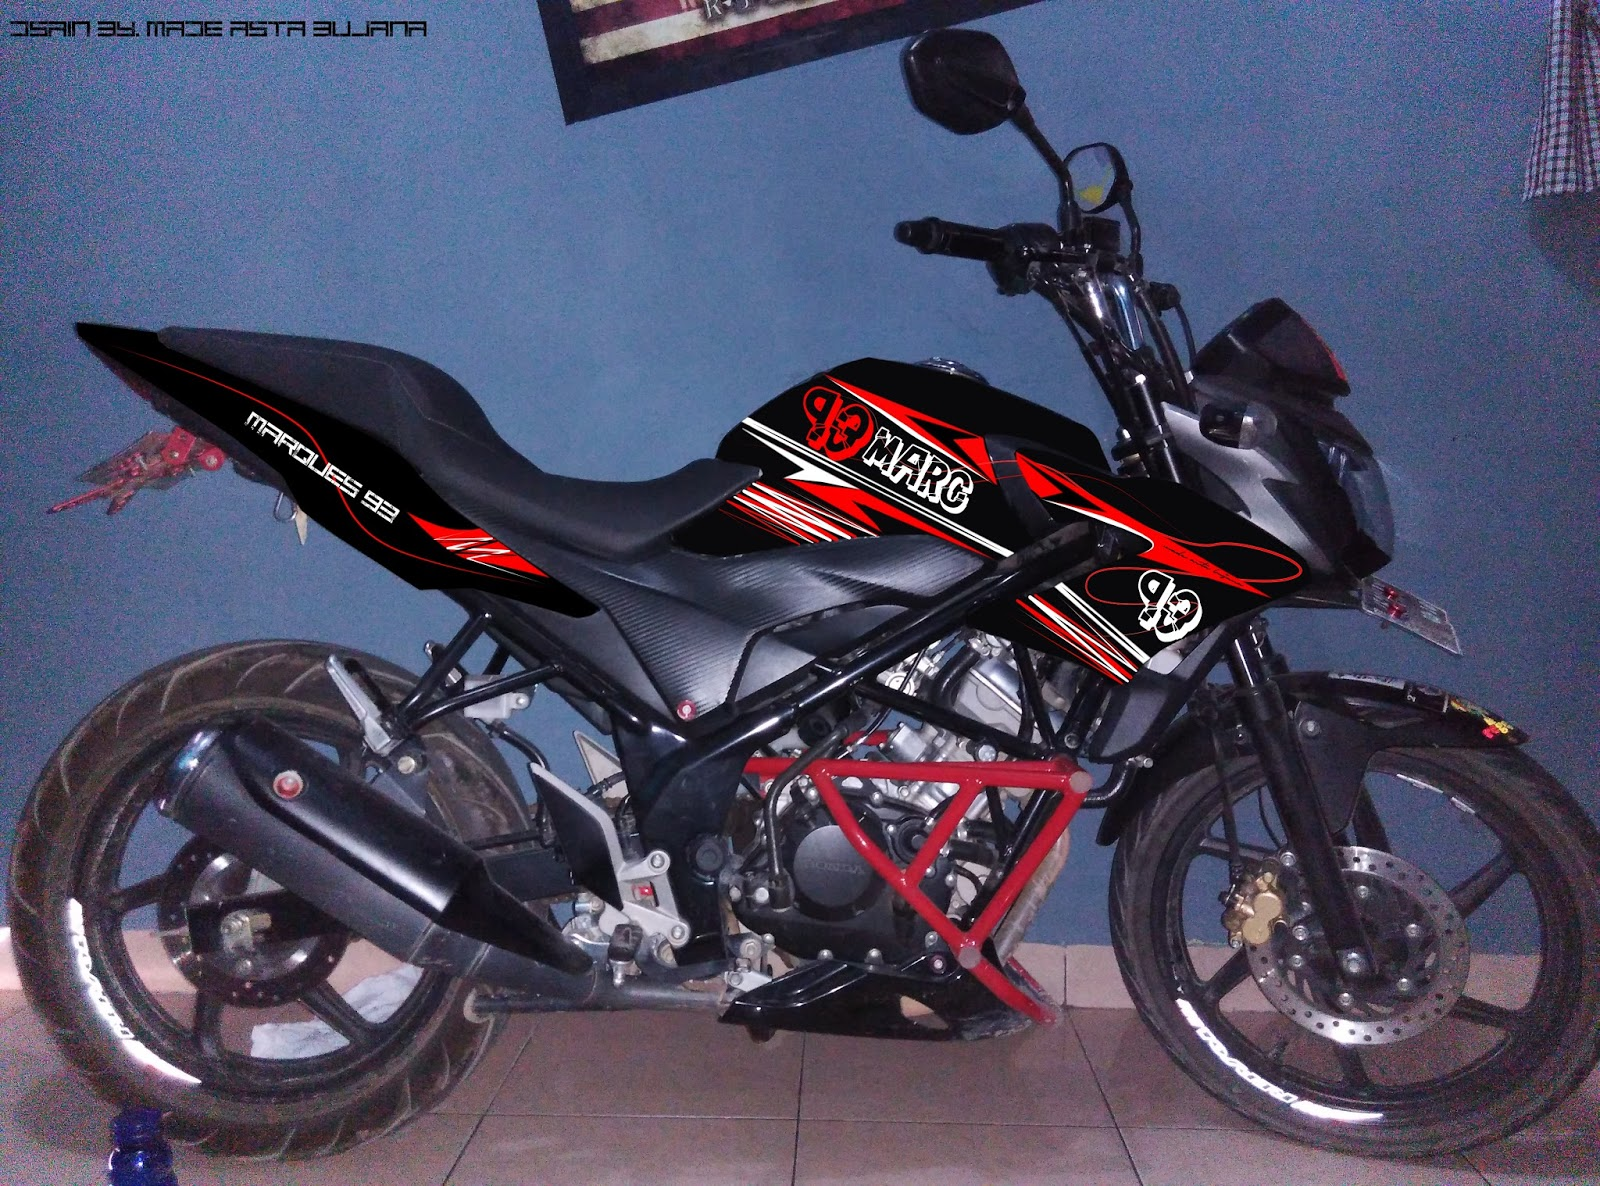 101 Modifikasi Motor Cb 150 R Striping Modifikasi Motor Honda CB